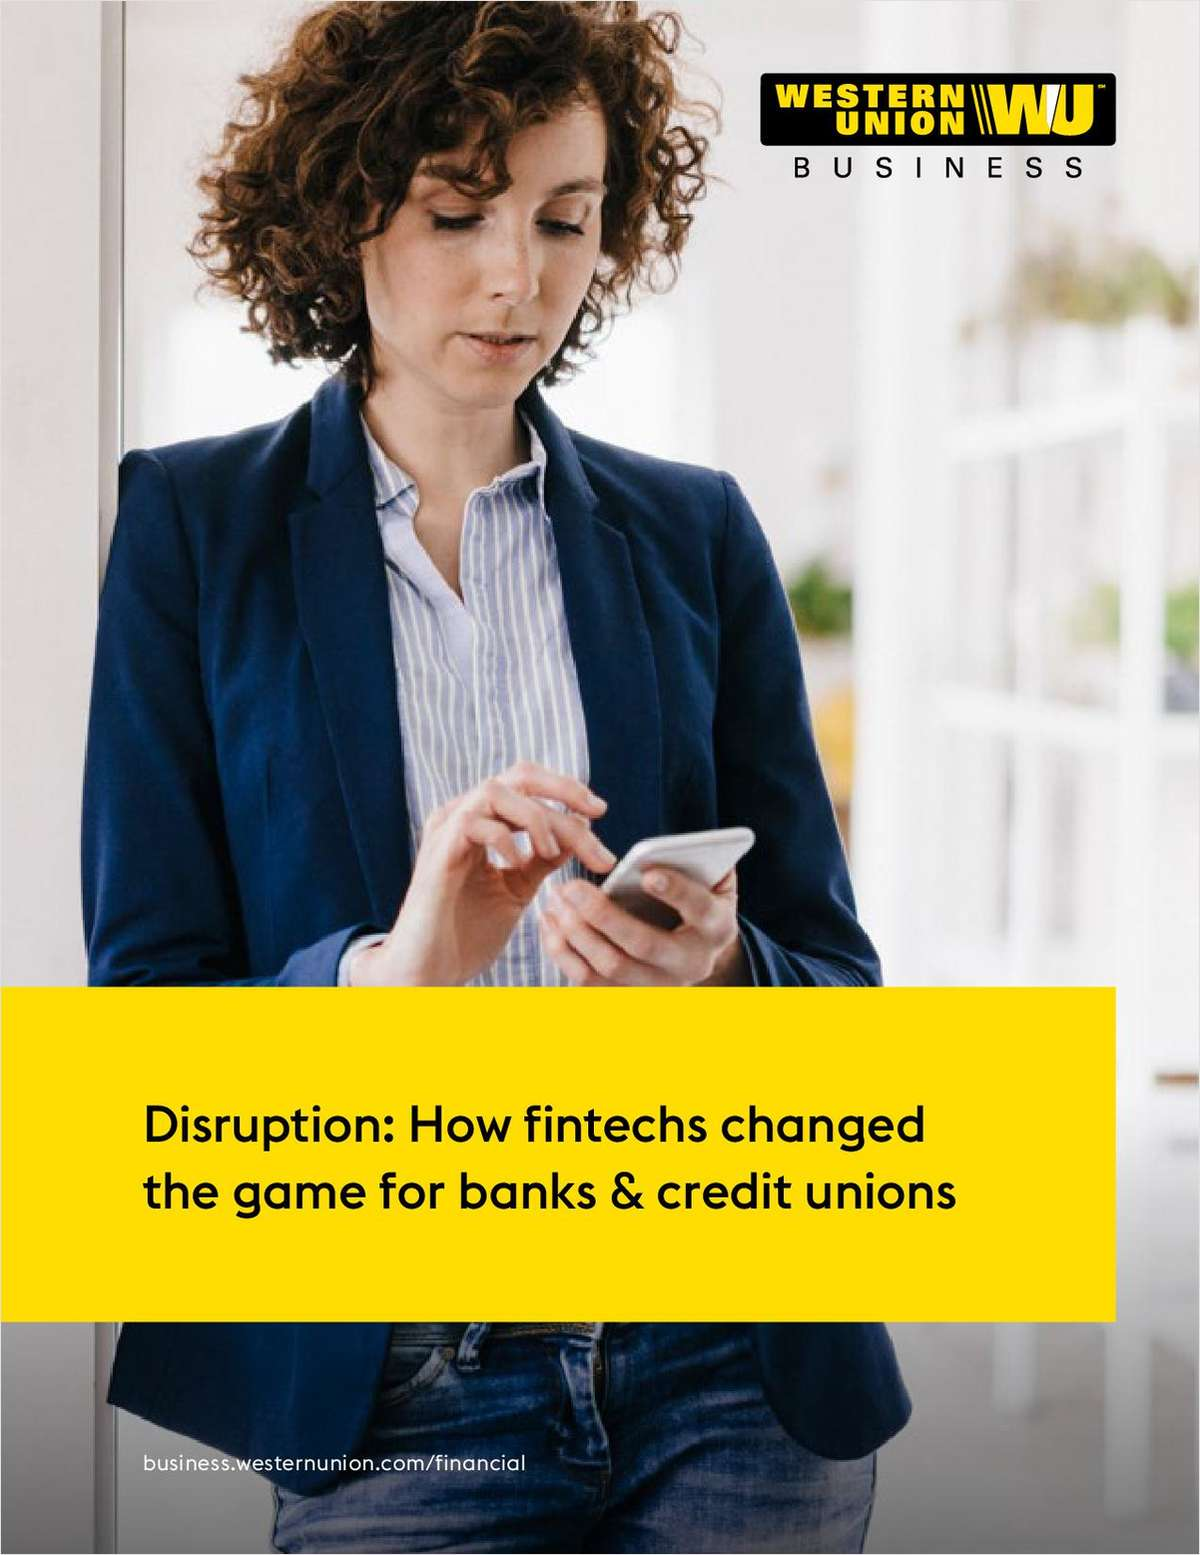 Disruption: How Fintechs Changed the Game for Banks & Credit Unions